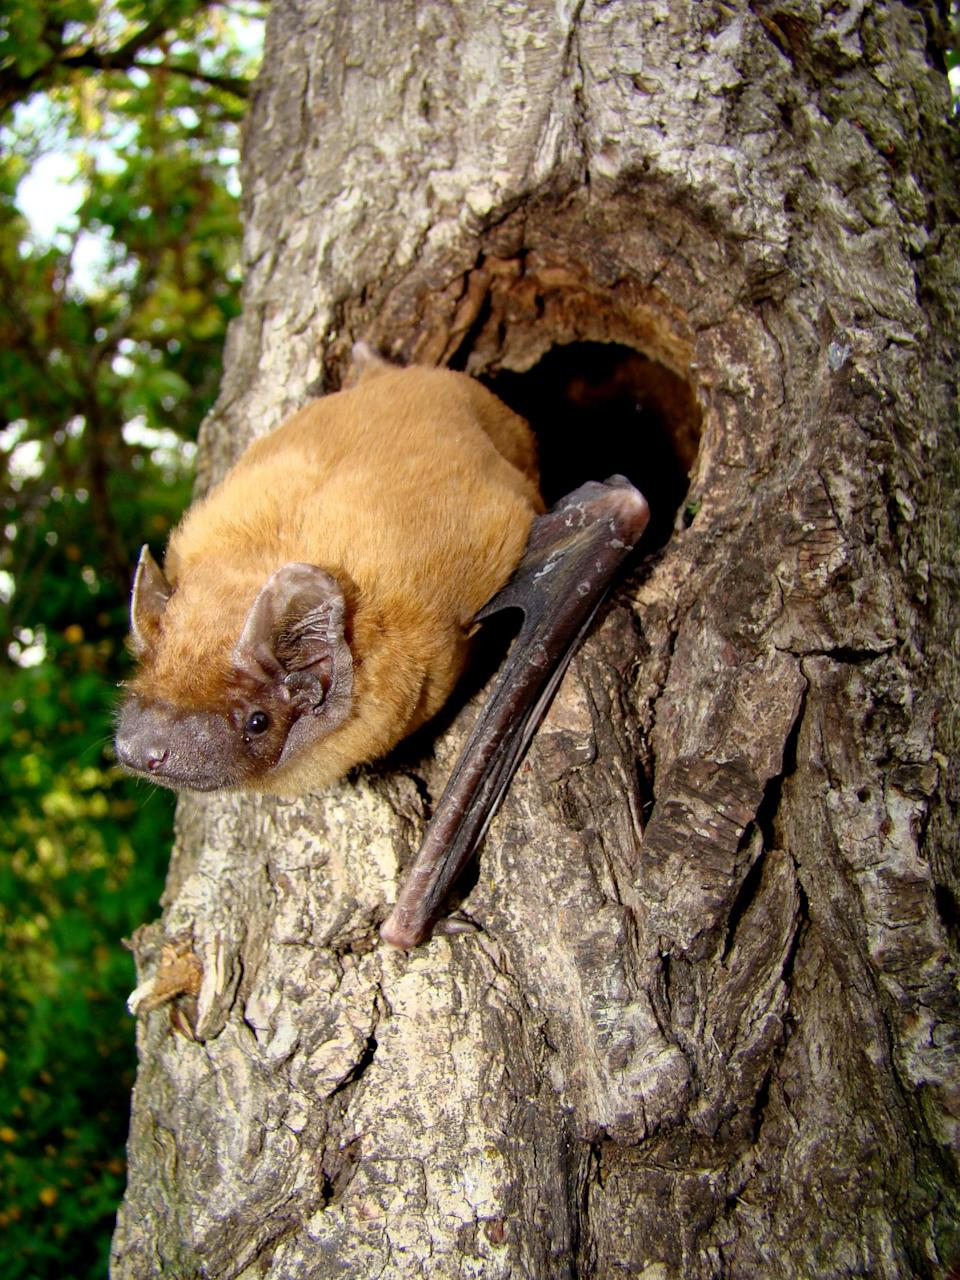 Woodland bats are key indicator species for the health of the habitat as a whole (Martin Celuch/www.bats.org.uk/PA)